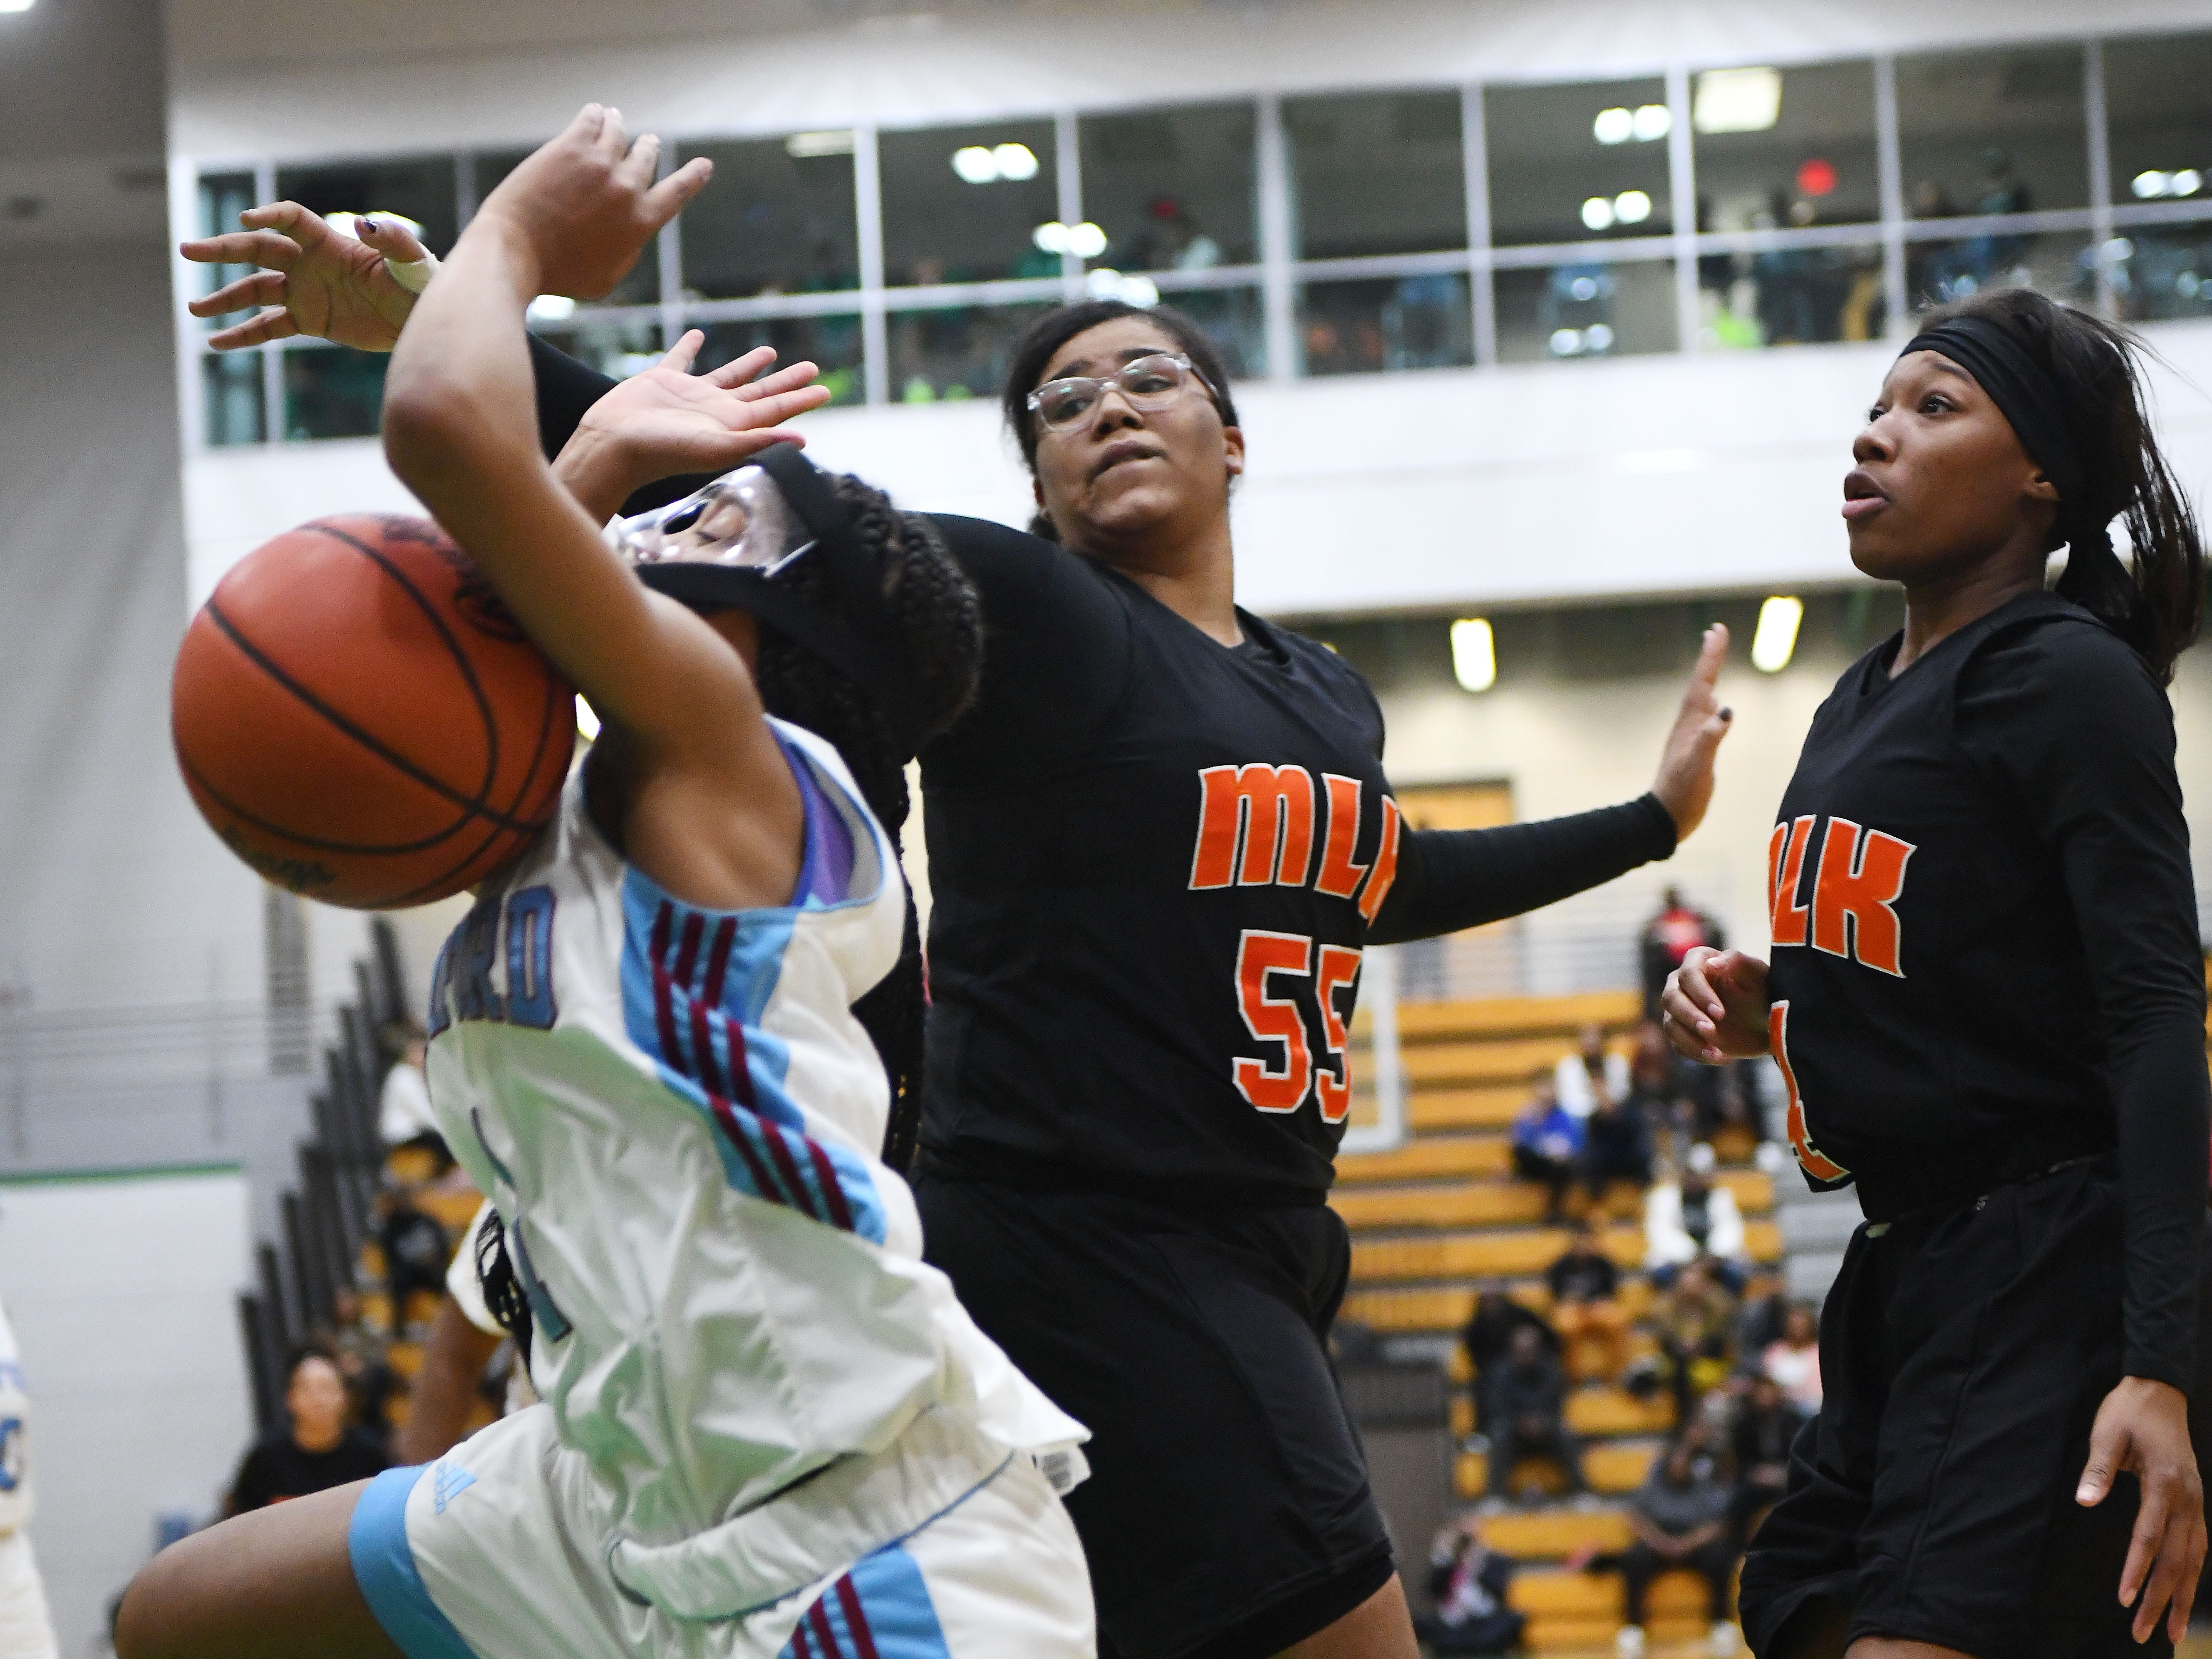 Mumford's Jaquoia Jackson is fouled by King's Erica Martin in the first half.